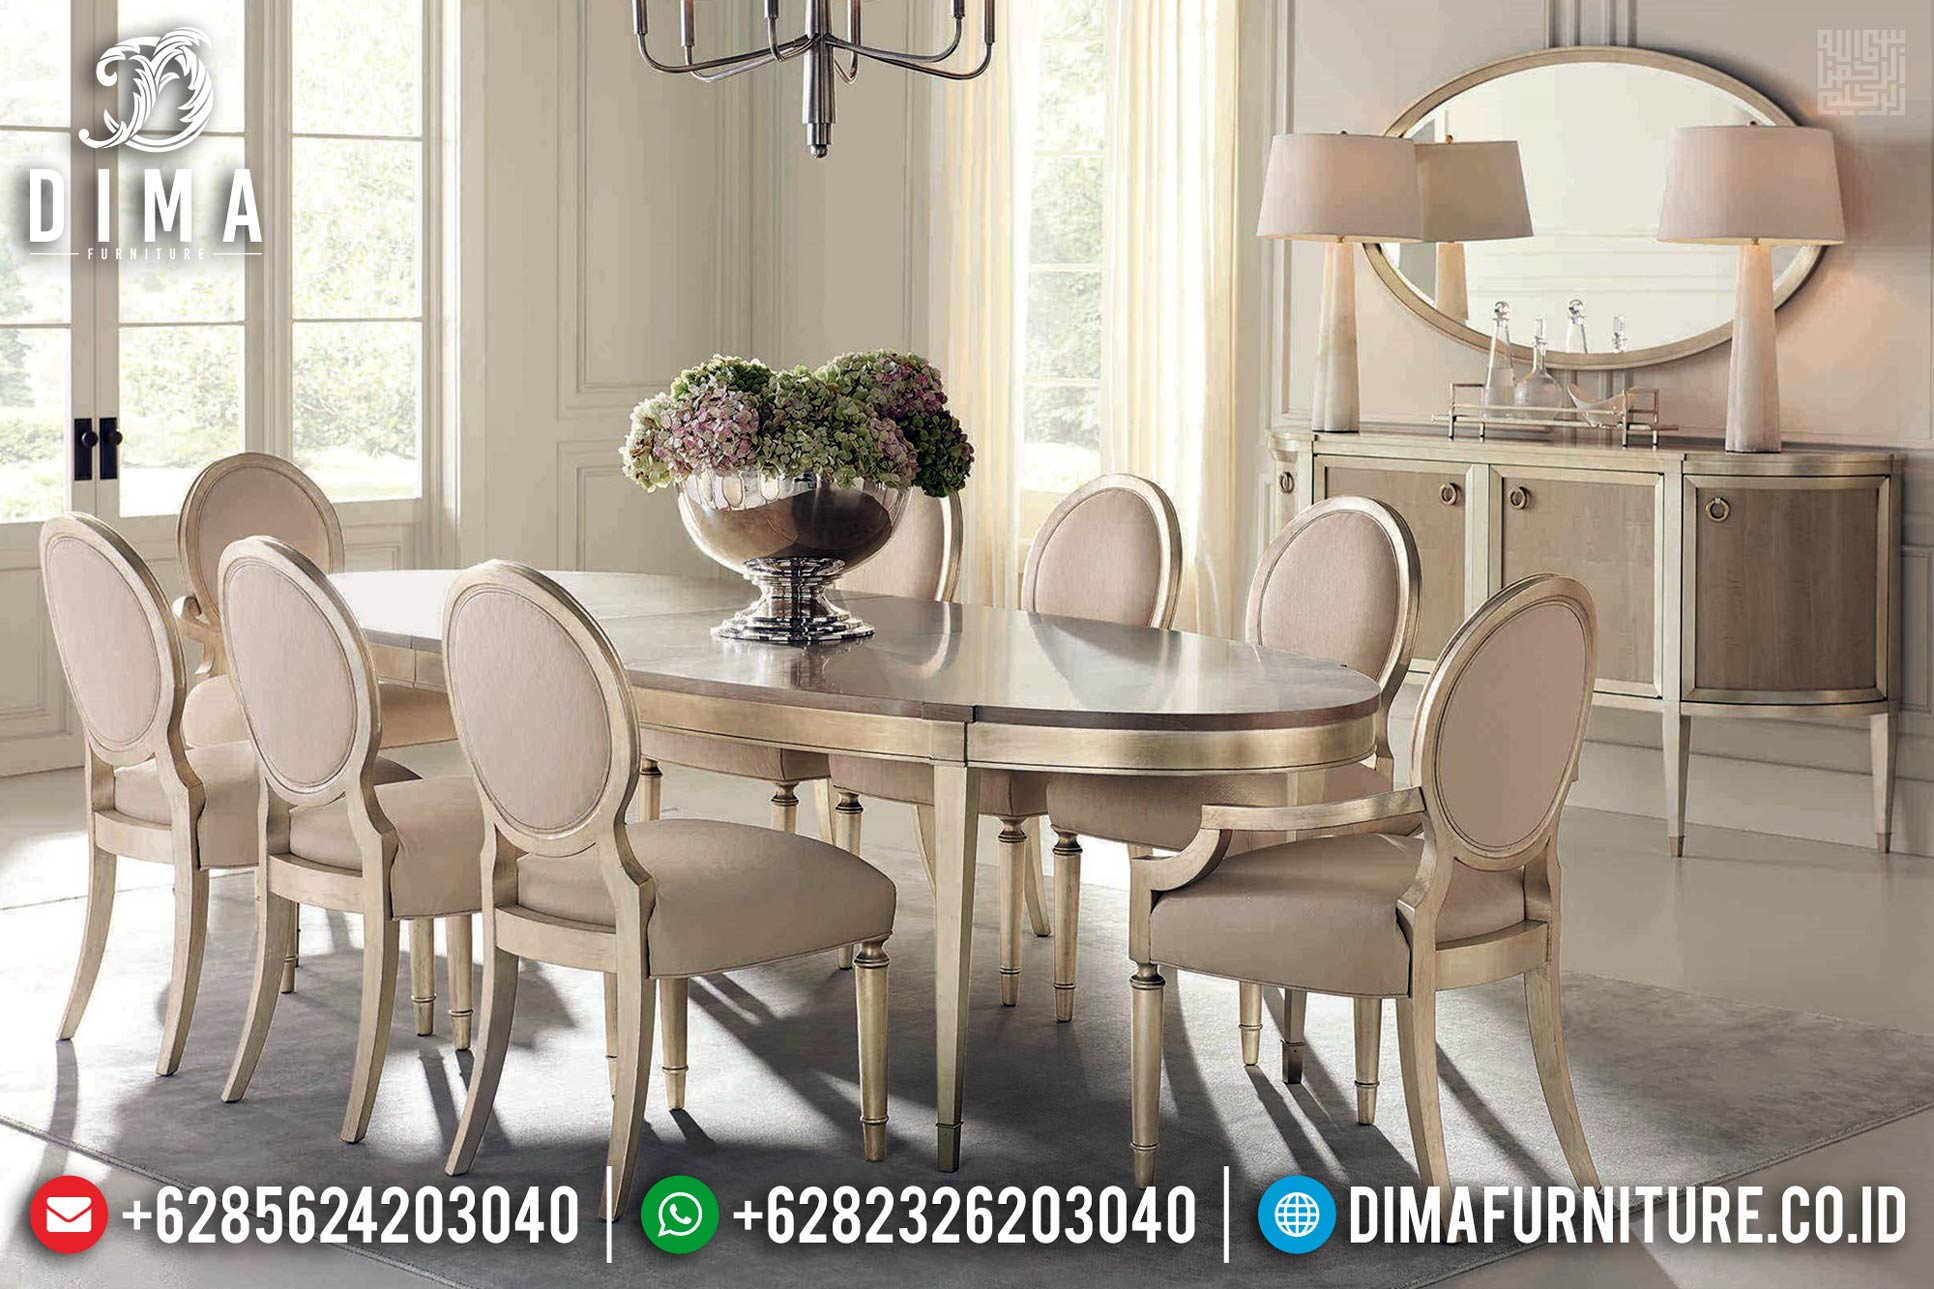 Meja Makan Jati Minimalis Modern French Furniture Style TTJ-0406